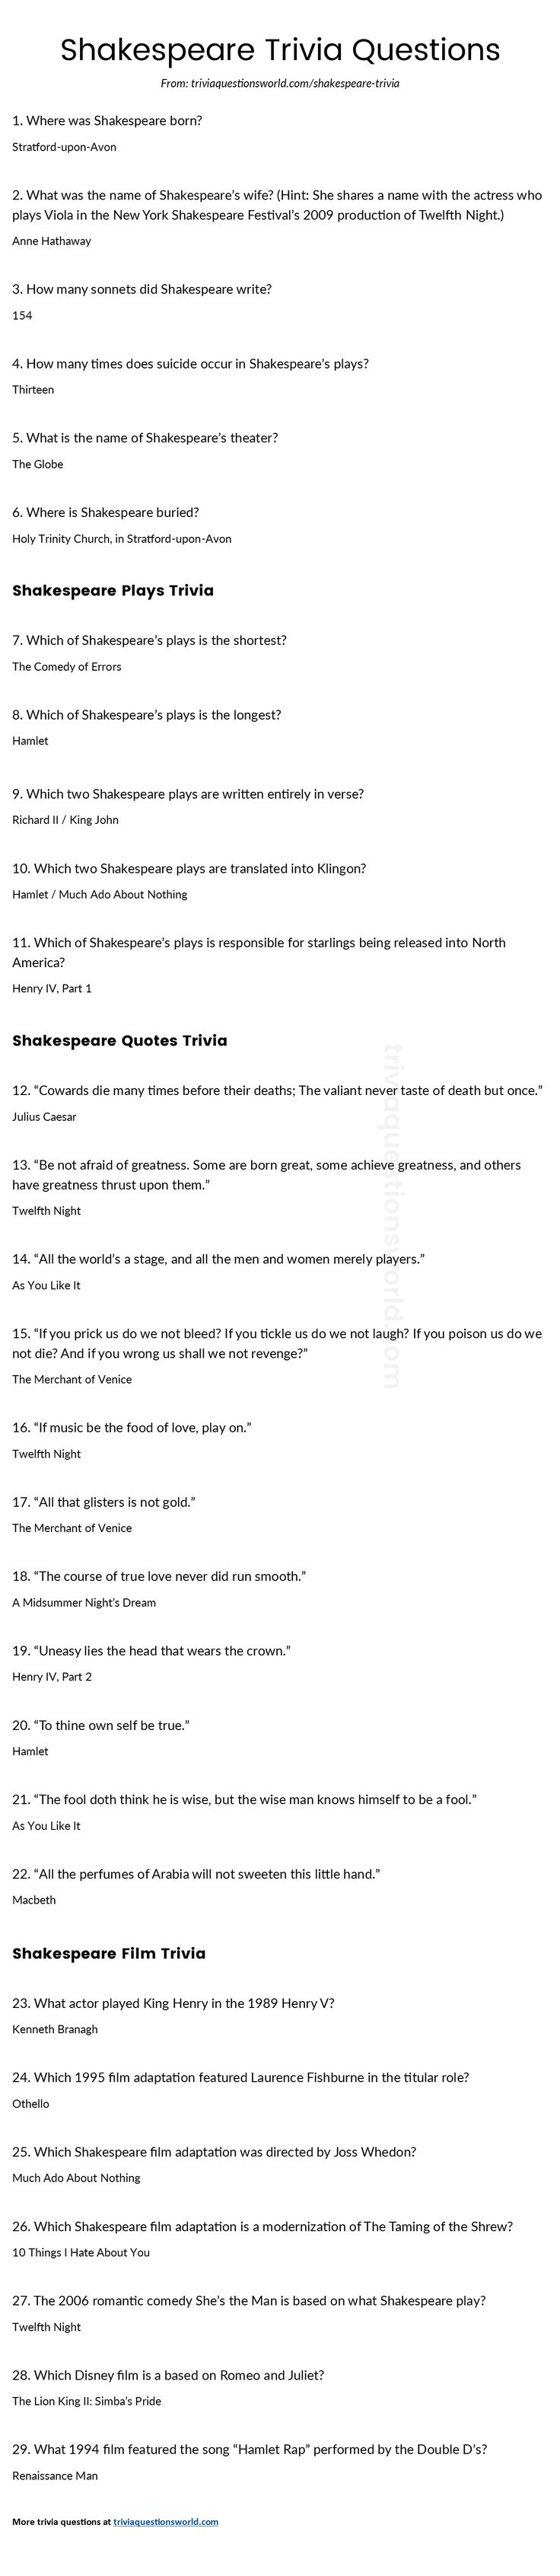 Lots of great shakespeare trivia questions and answers